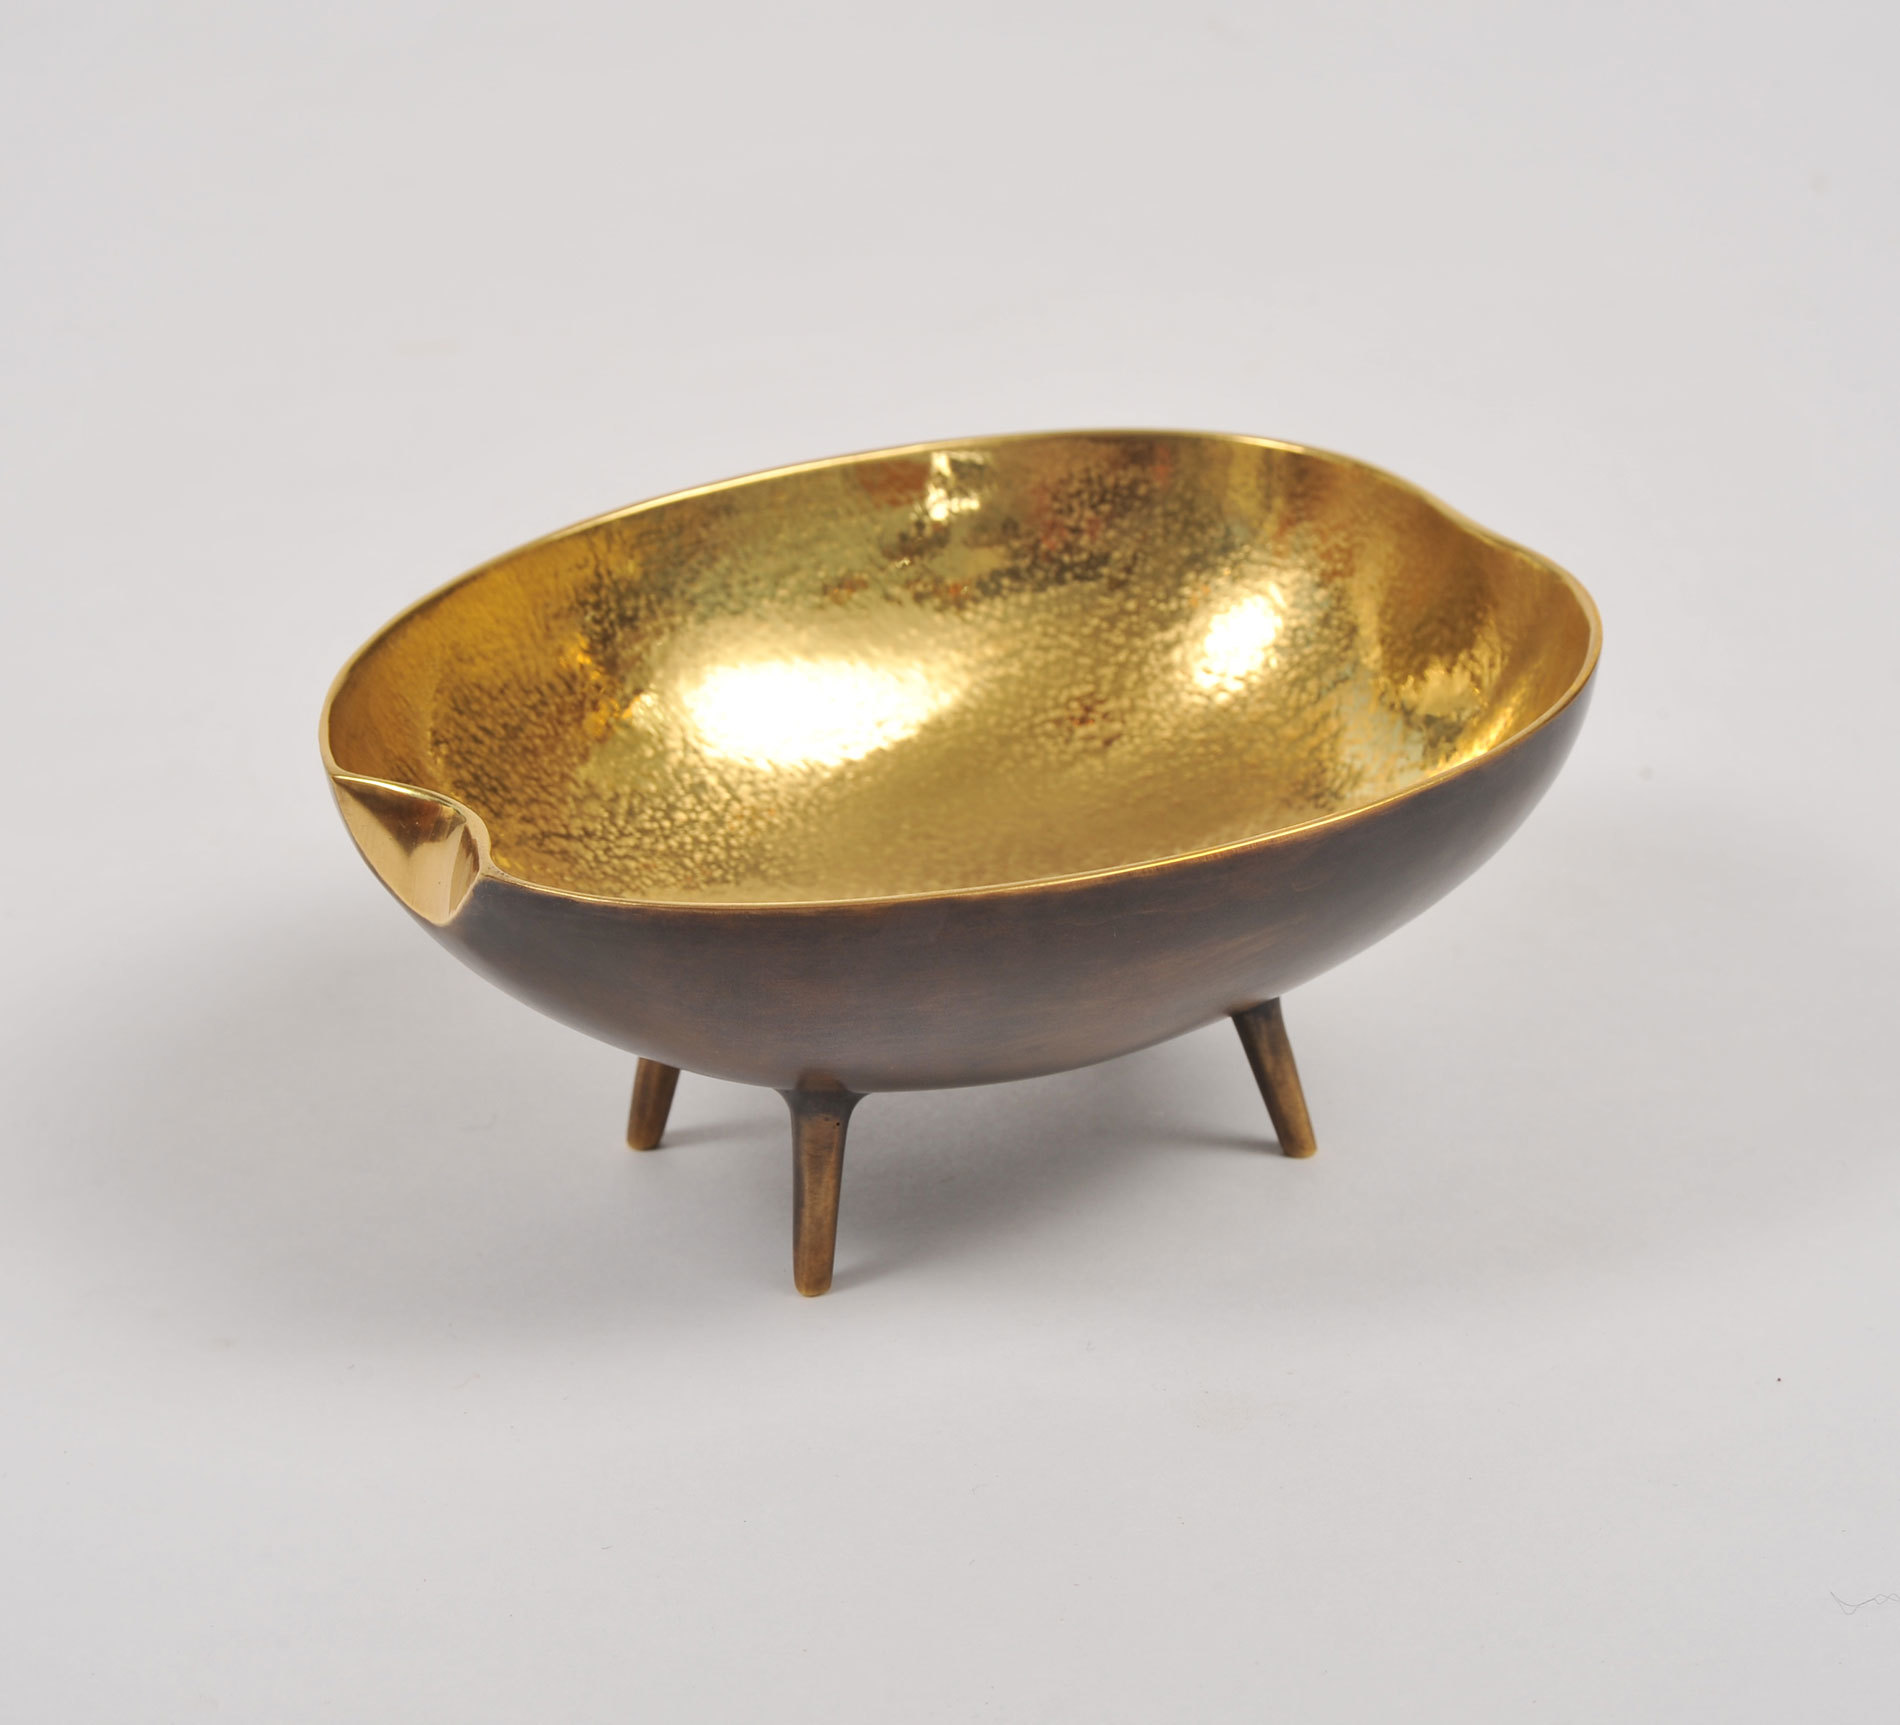 The image for Brass Tripod Bowl 02